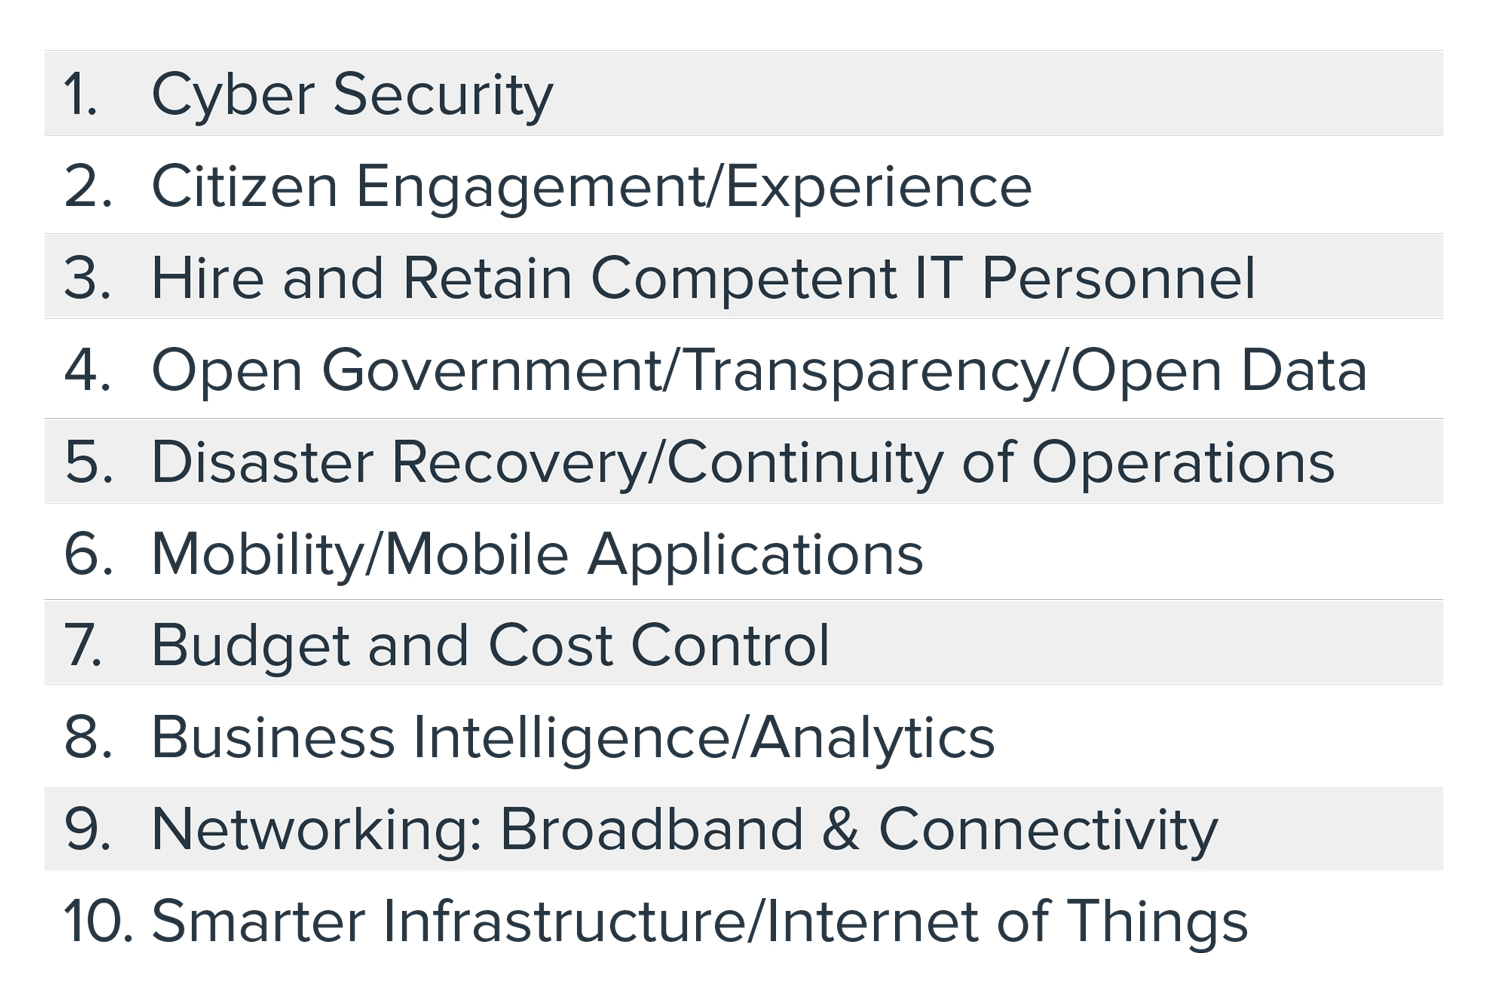 Source:  https://www.govtech.com/navigator/numbers/top-10-city-technology-priorities-2019_177.html